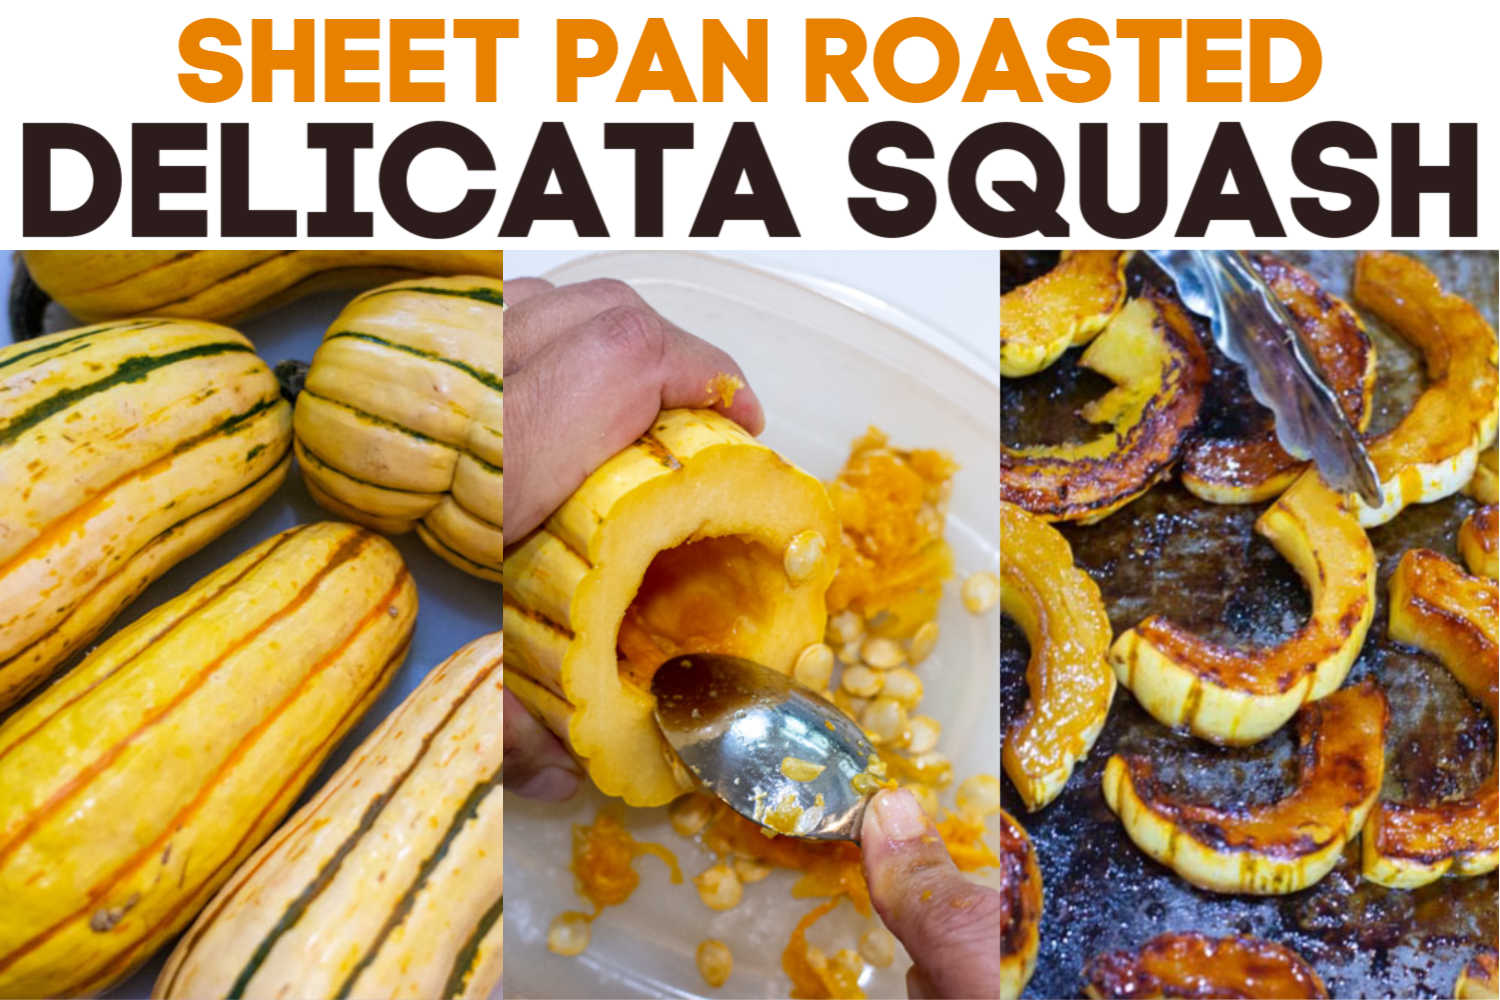 Three images showing the whole squash, scooping out the seeds and the roasted delicate squash rings